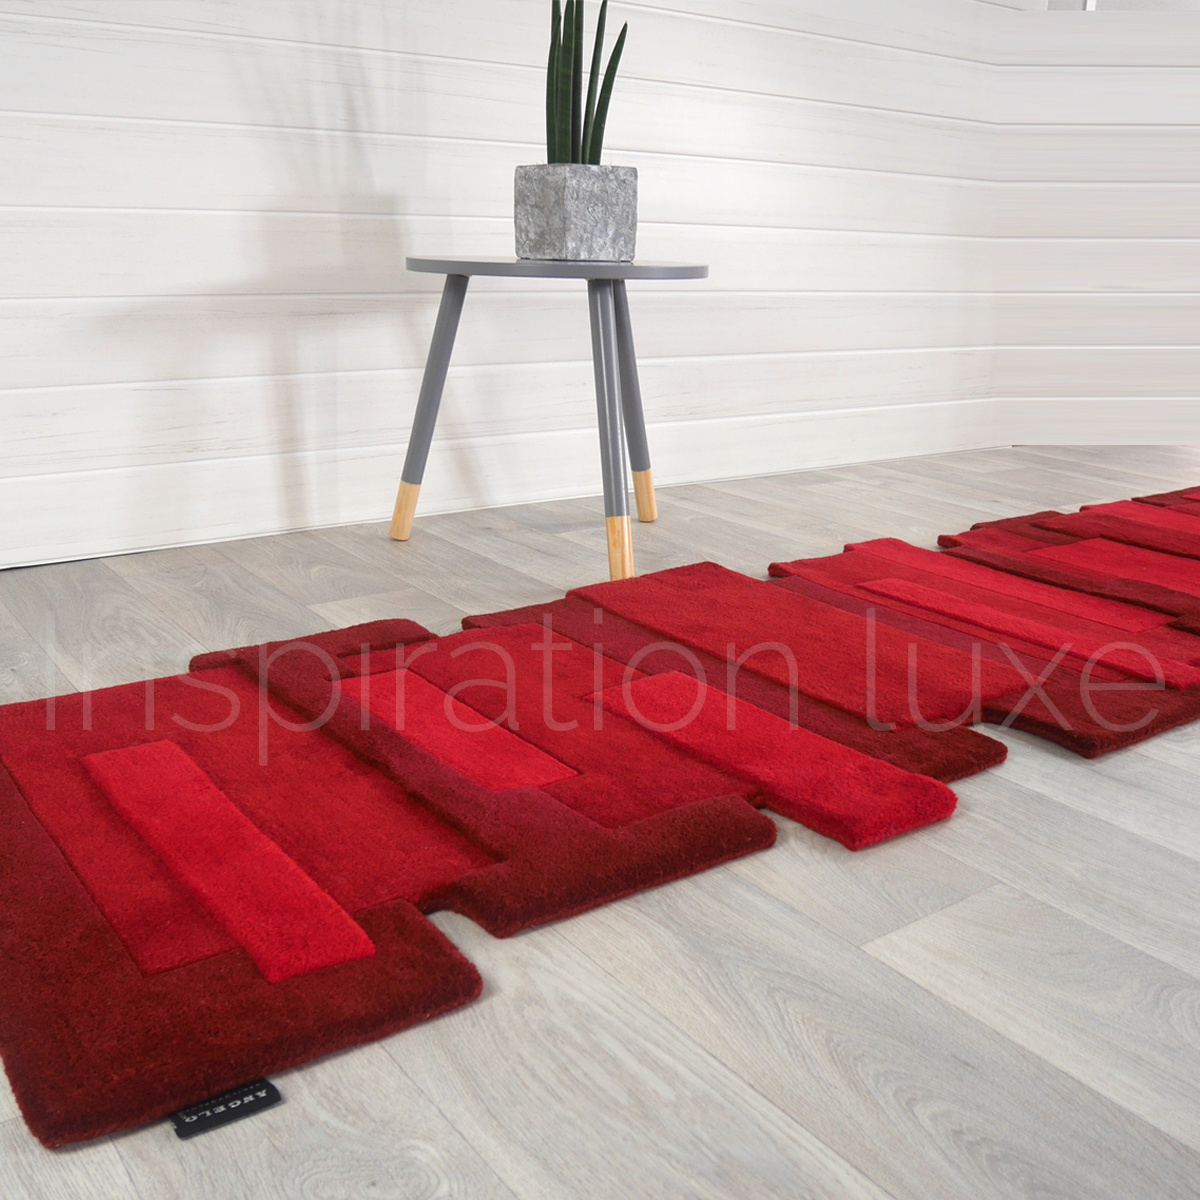 tapis design rouge. Black Bedroom Furniture Sets. Home Design Ideas